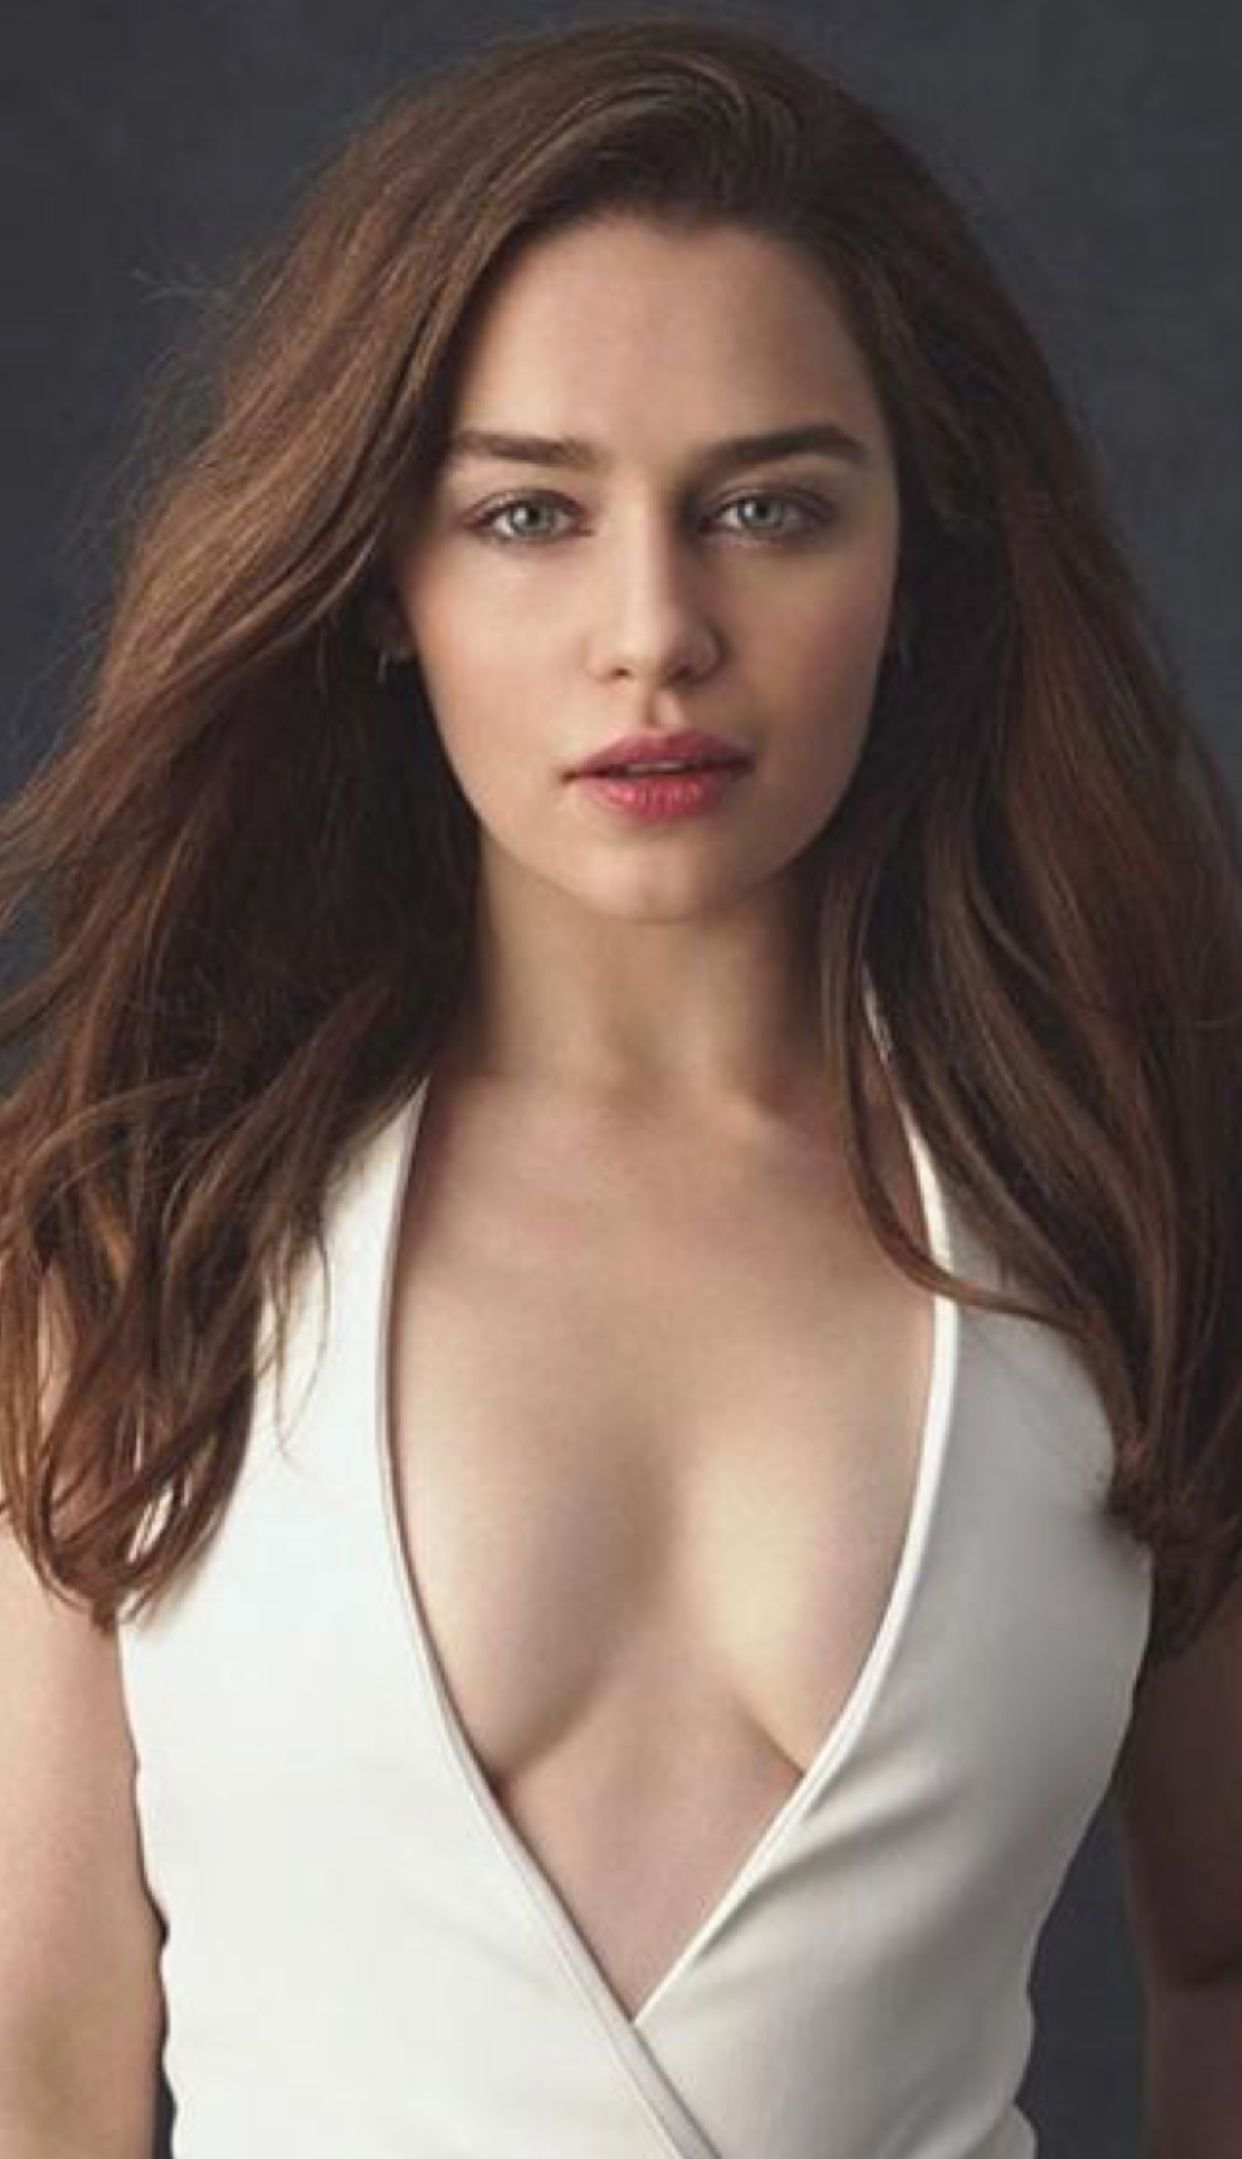 Discussion on this topic: Keira Knightley Nude Photos and Videos, emilia-clarke-nude-game-of-thrones-2019/